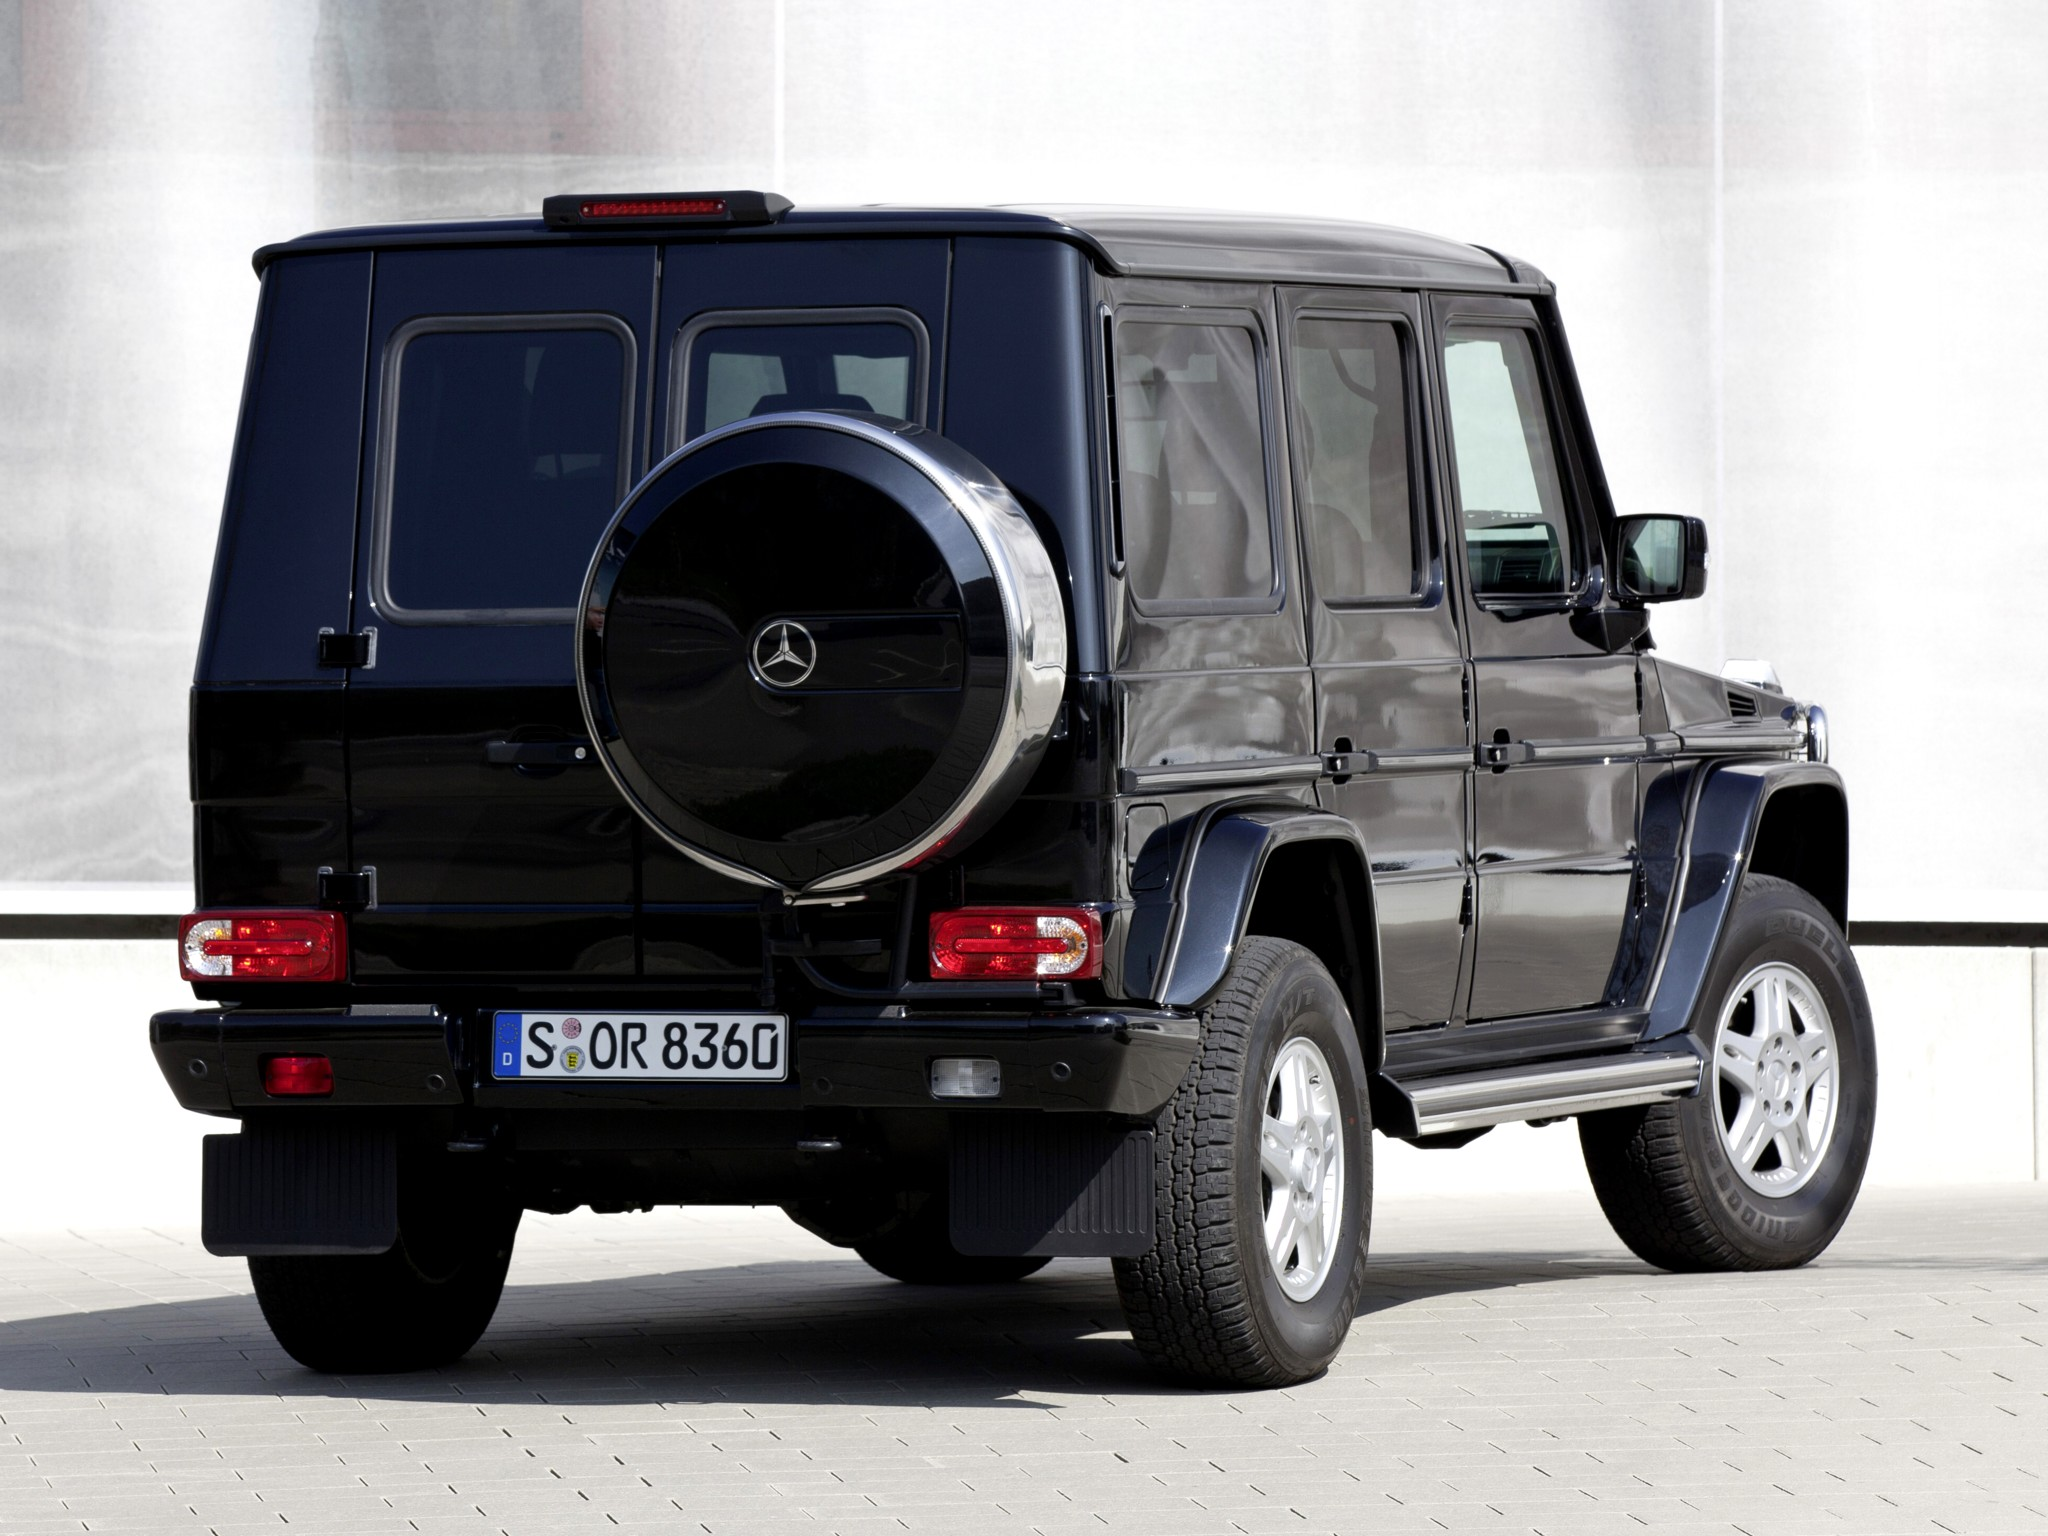 2009 armored mercedes benz g 500 guard w463 suv 4x4 f for Mercedes benz armored